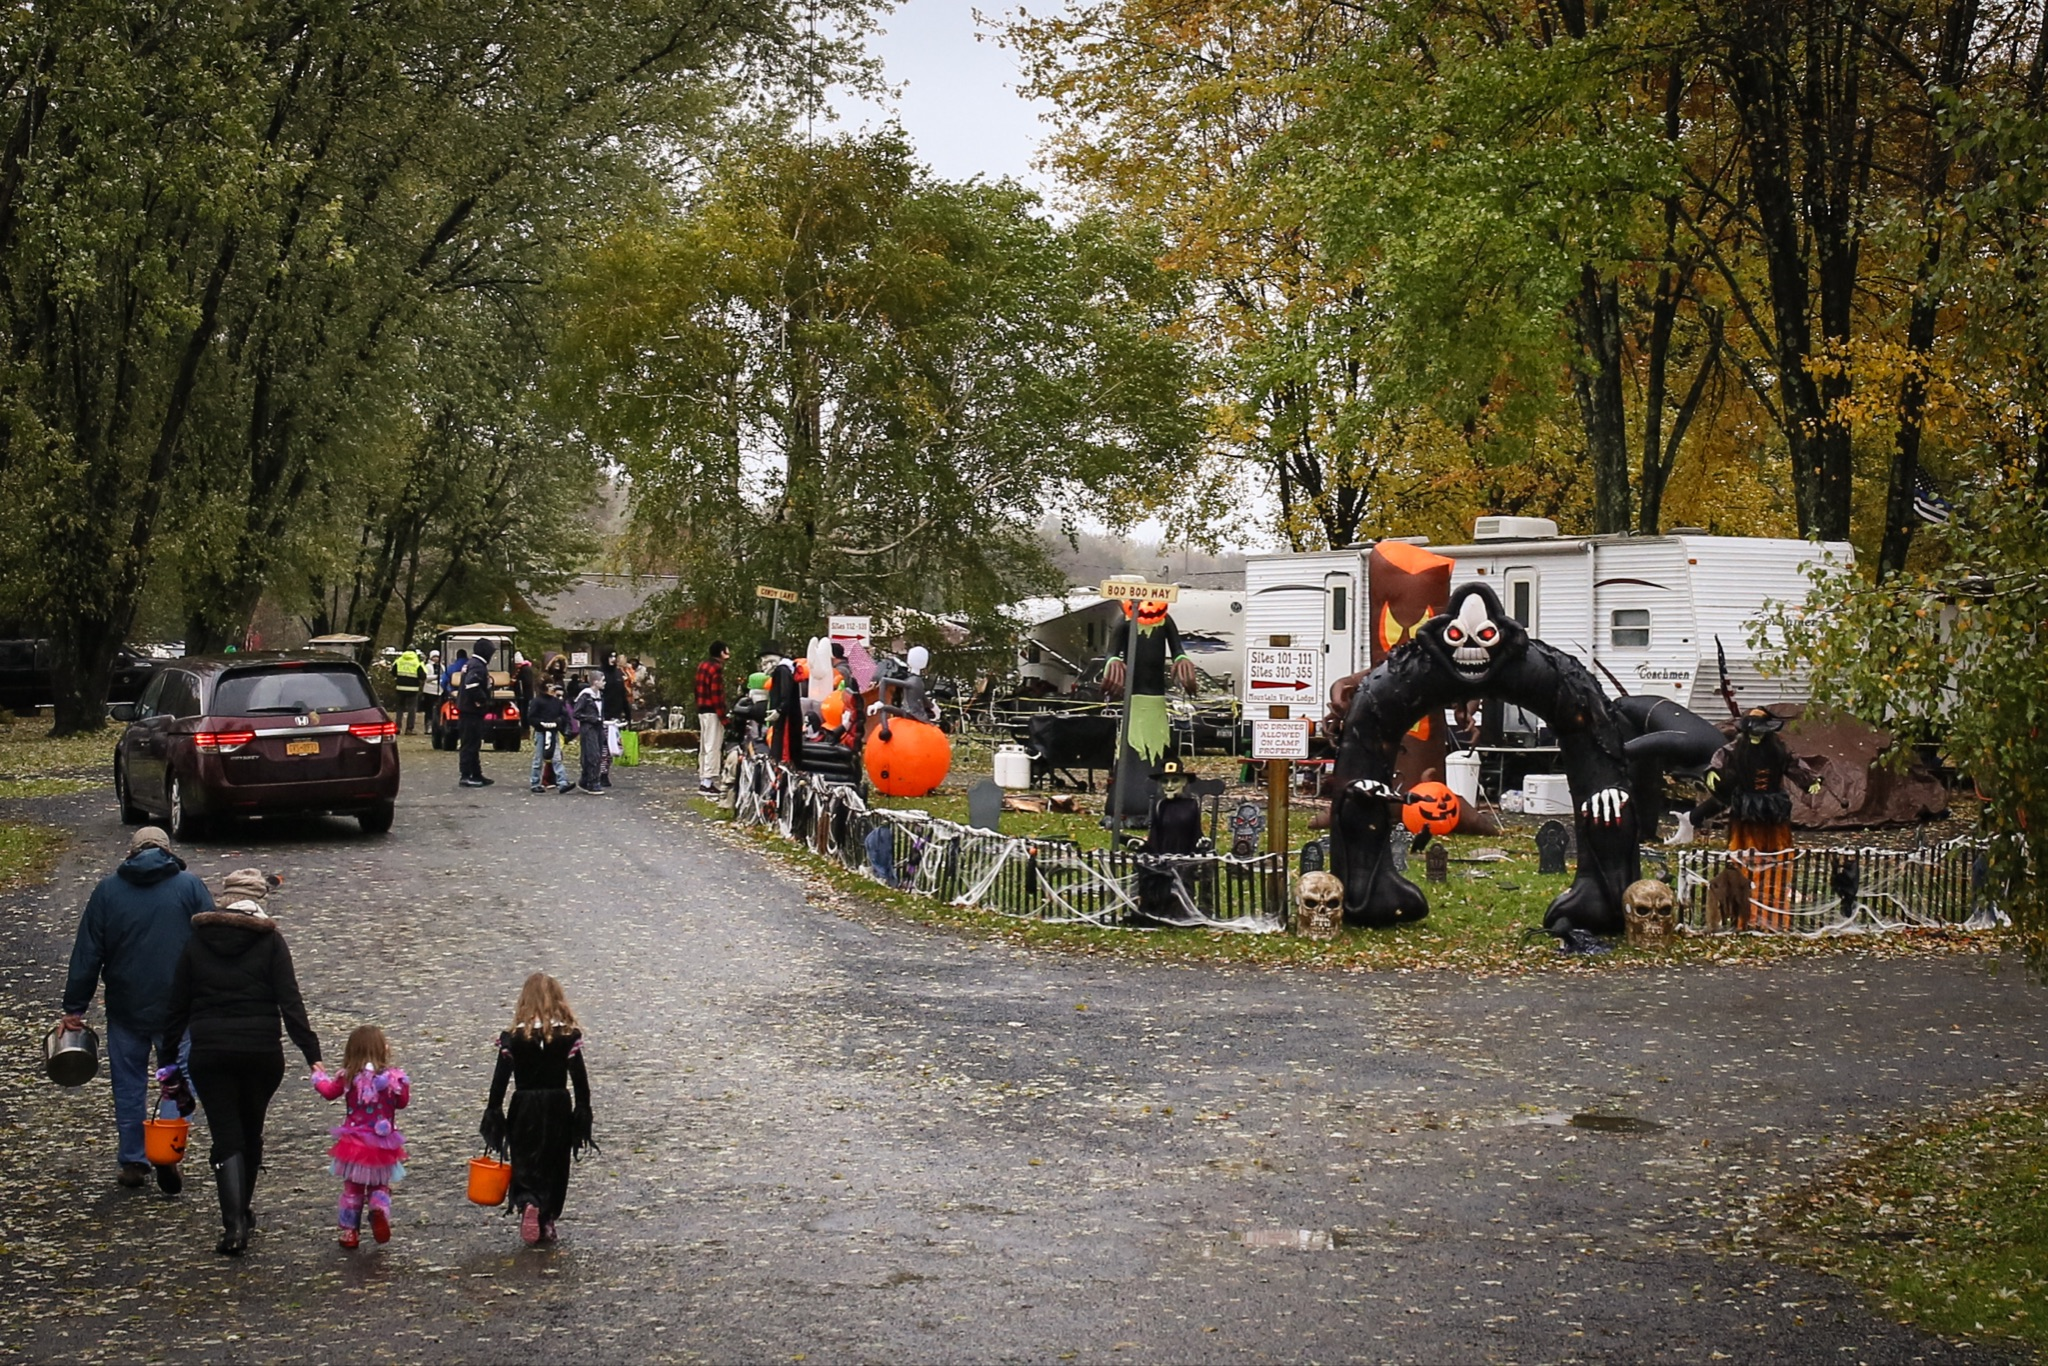 Trick-or-treat at campground with campsite decorated for halloween.